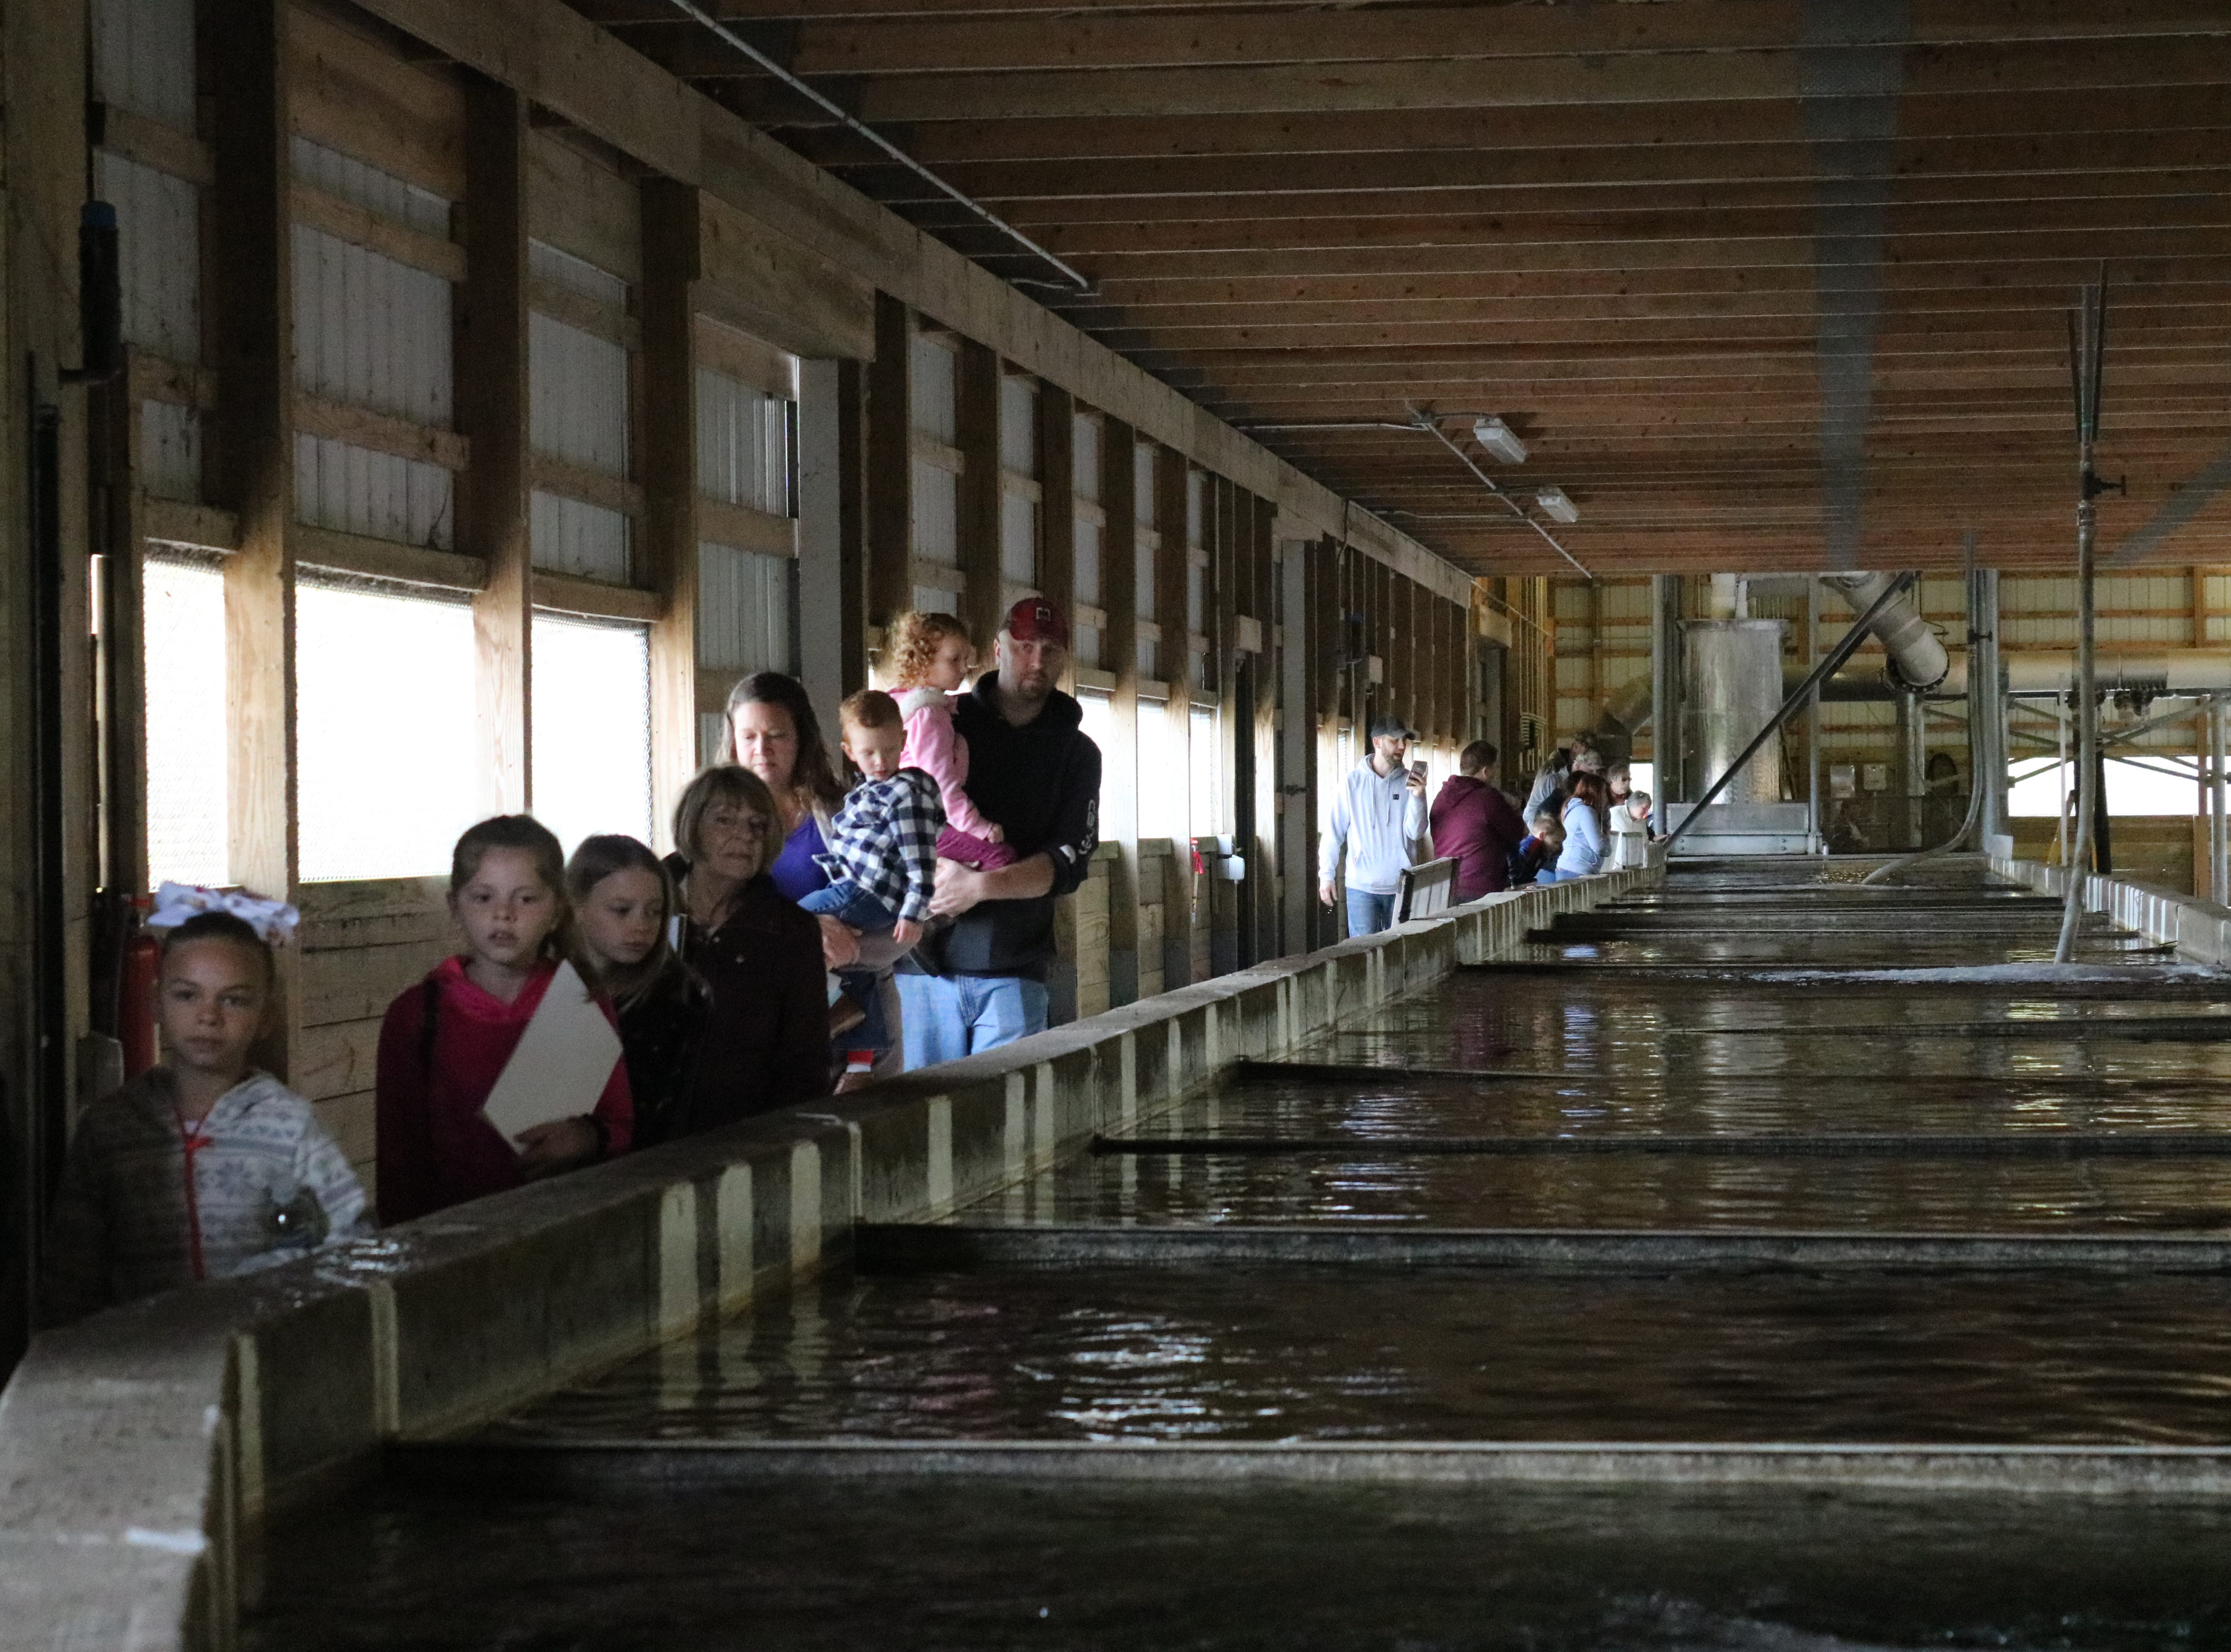 Ohio Department of Natural Resources held an open house at their state fish hatchery in Castalia on Saturday.